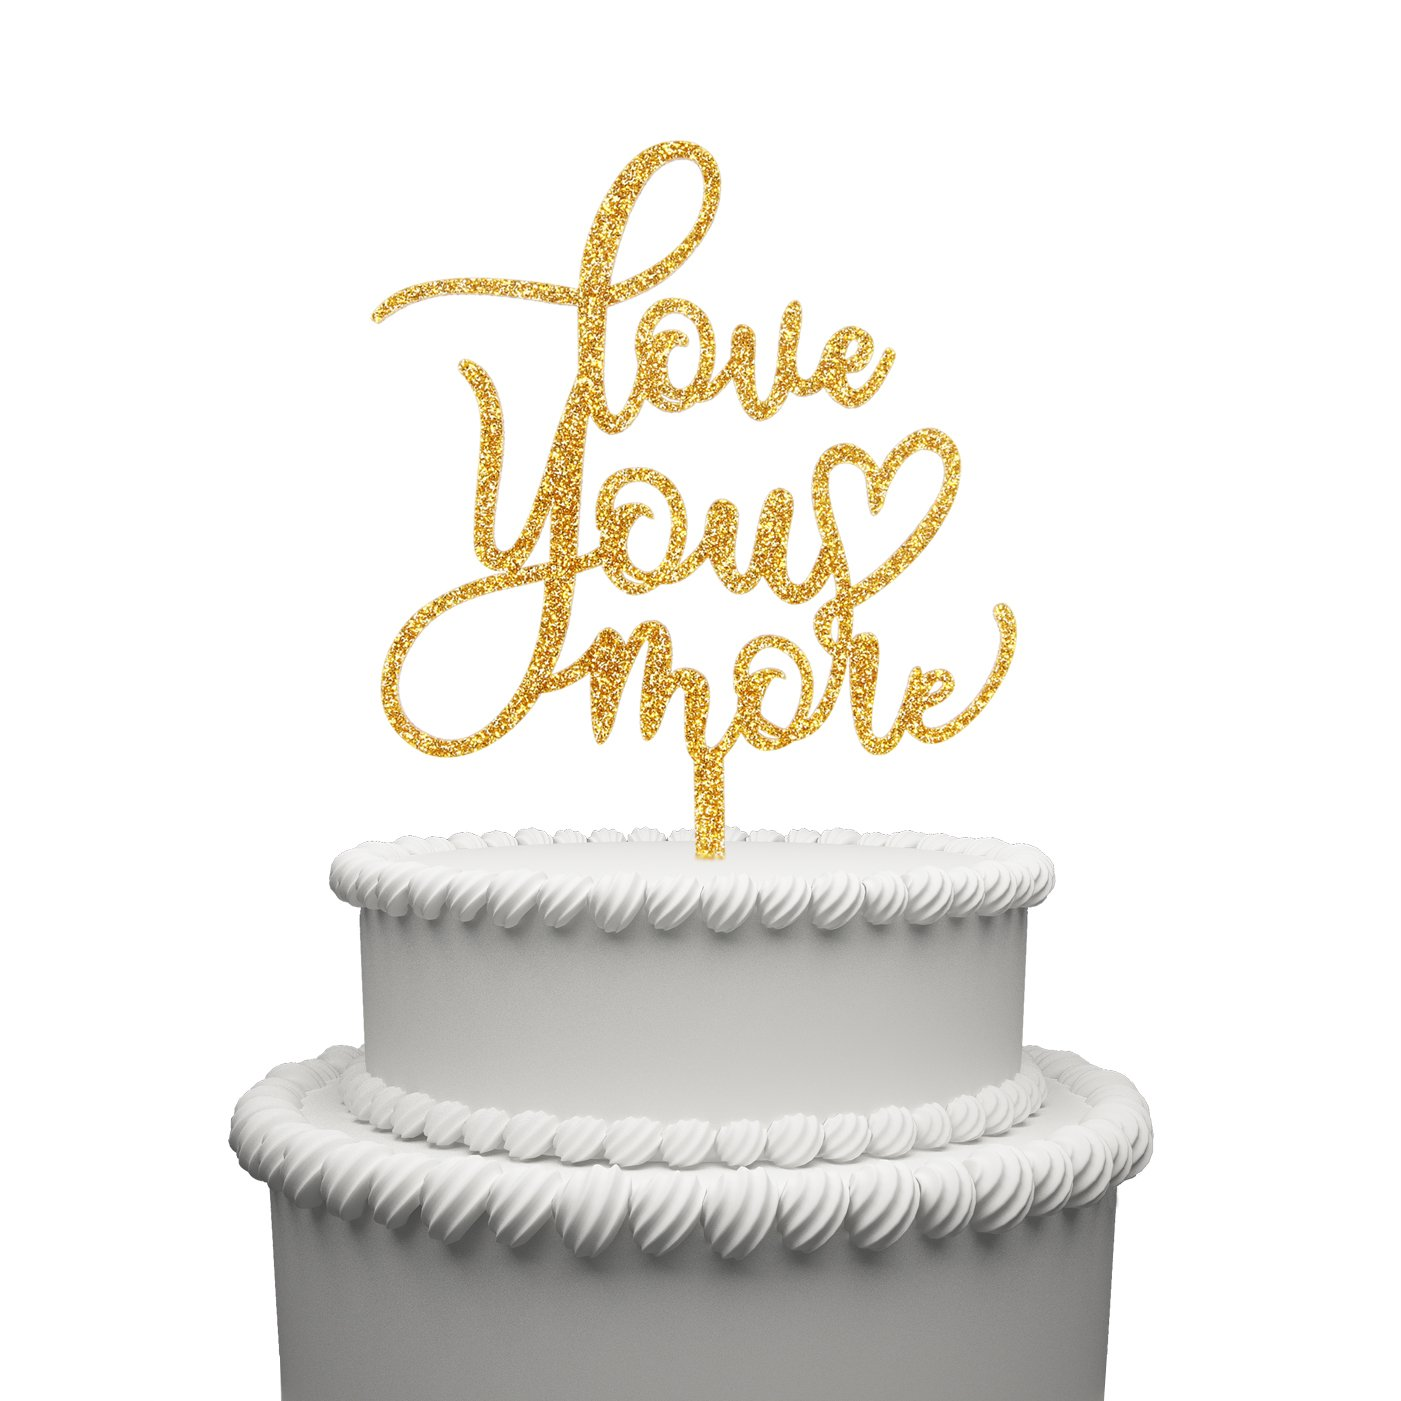 Love You More Cake Topper Acrylic Wedding Cake Topper Aniversary Party Decorations Favors Gold